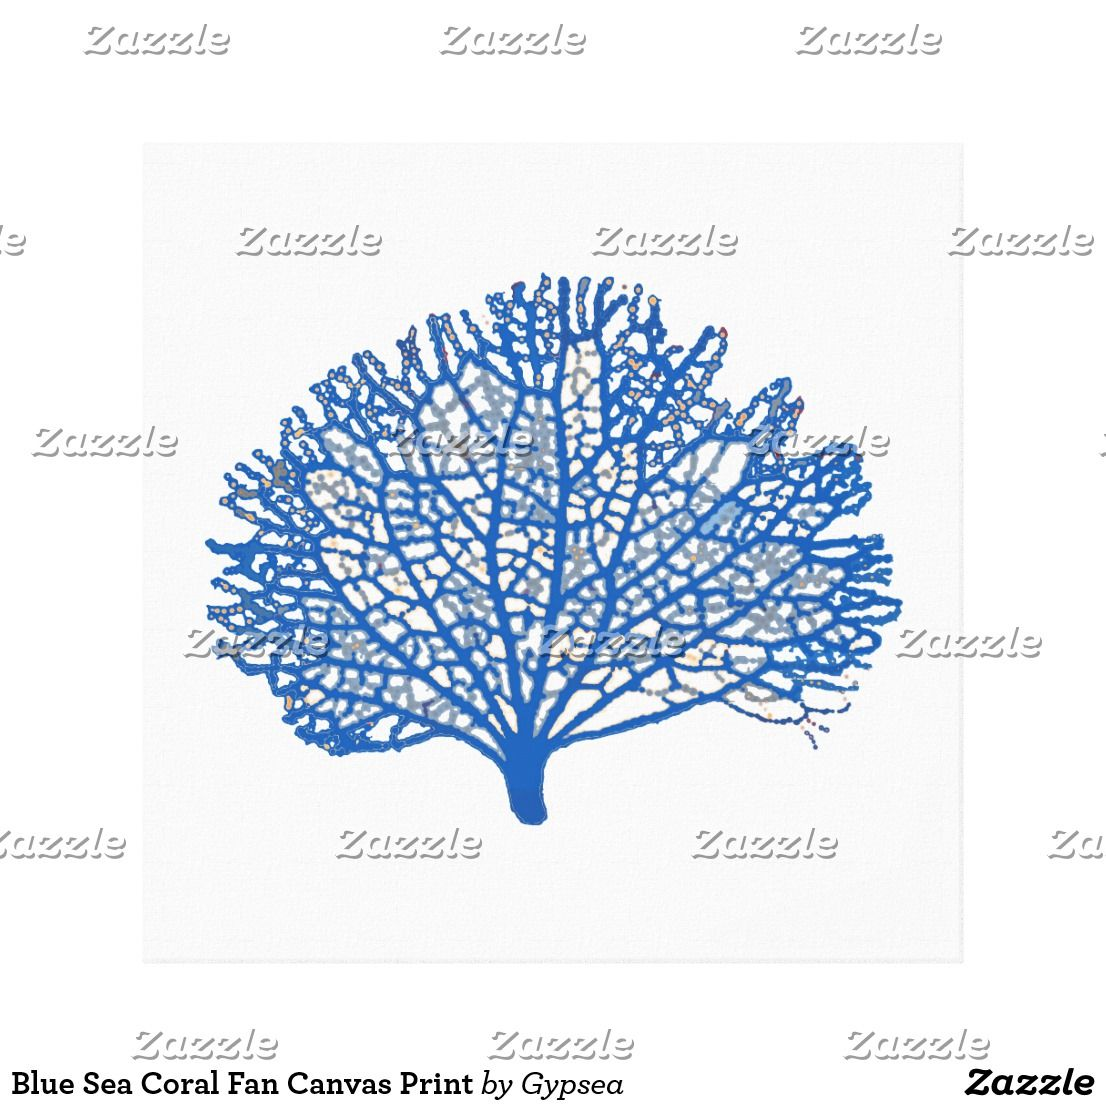 Blue Sea Coral Fan Canvas Print